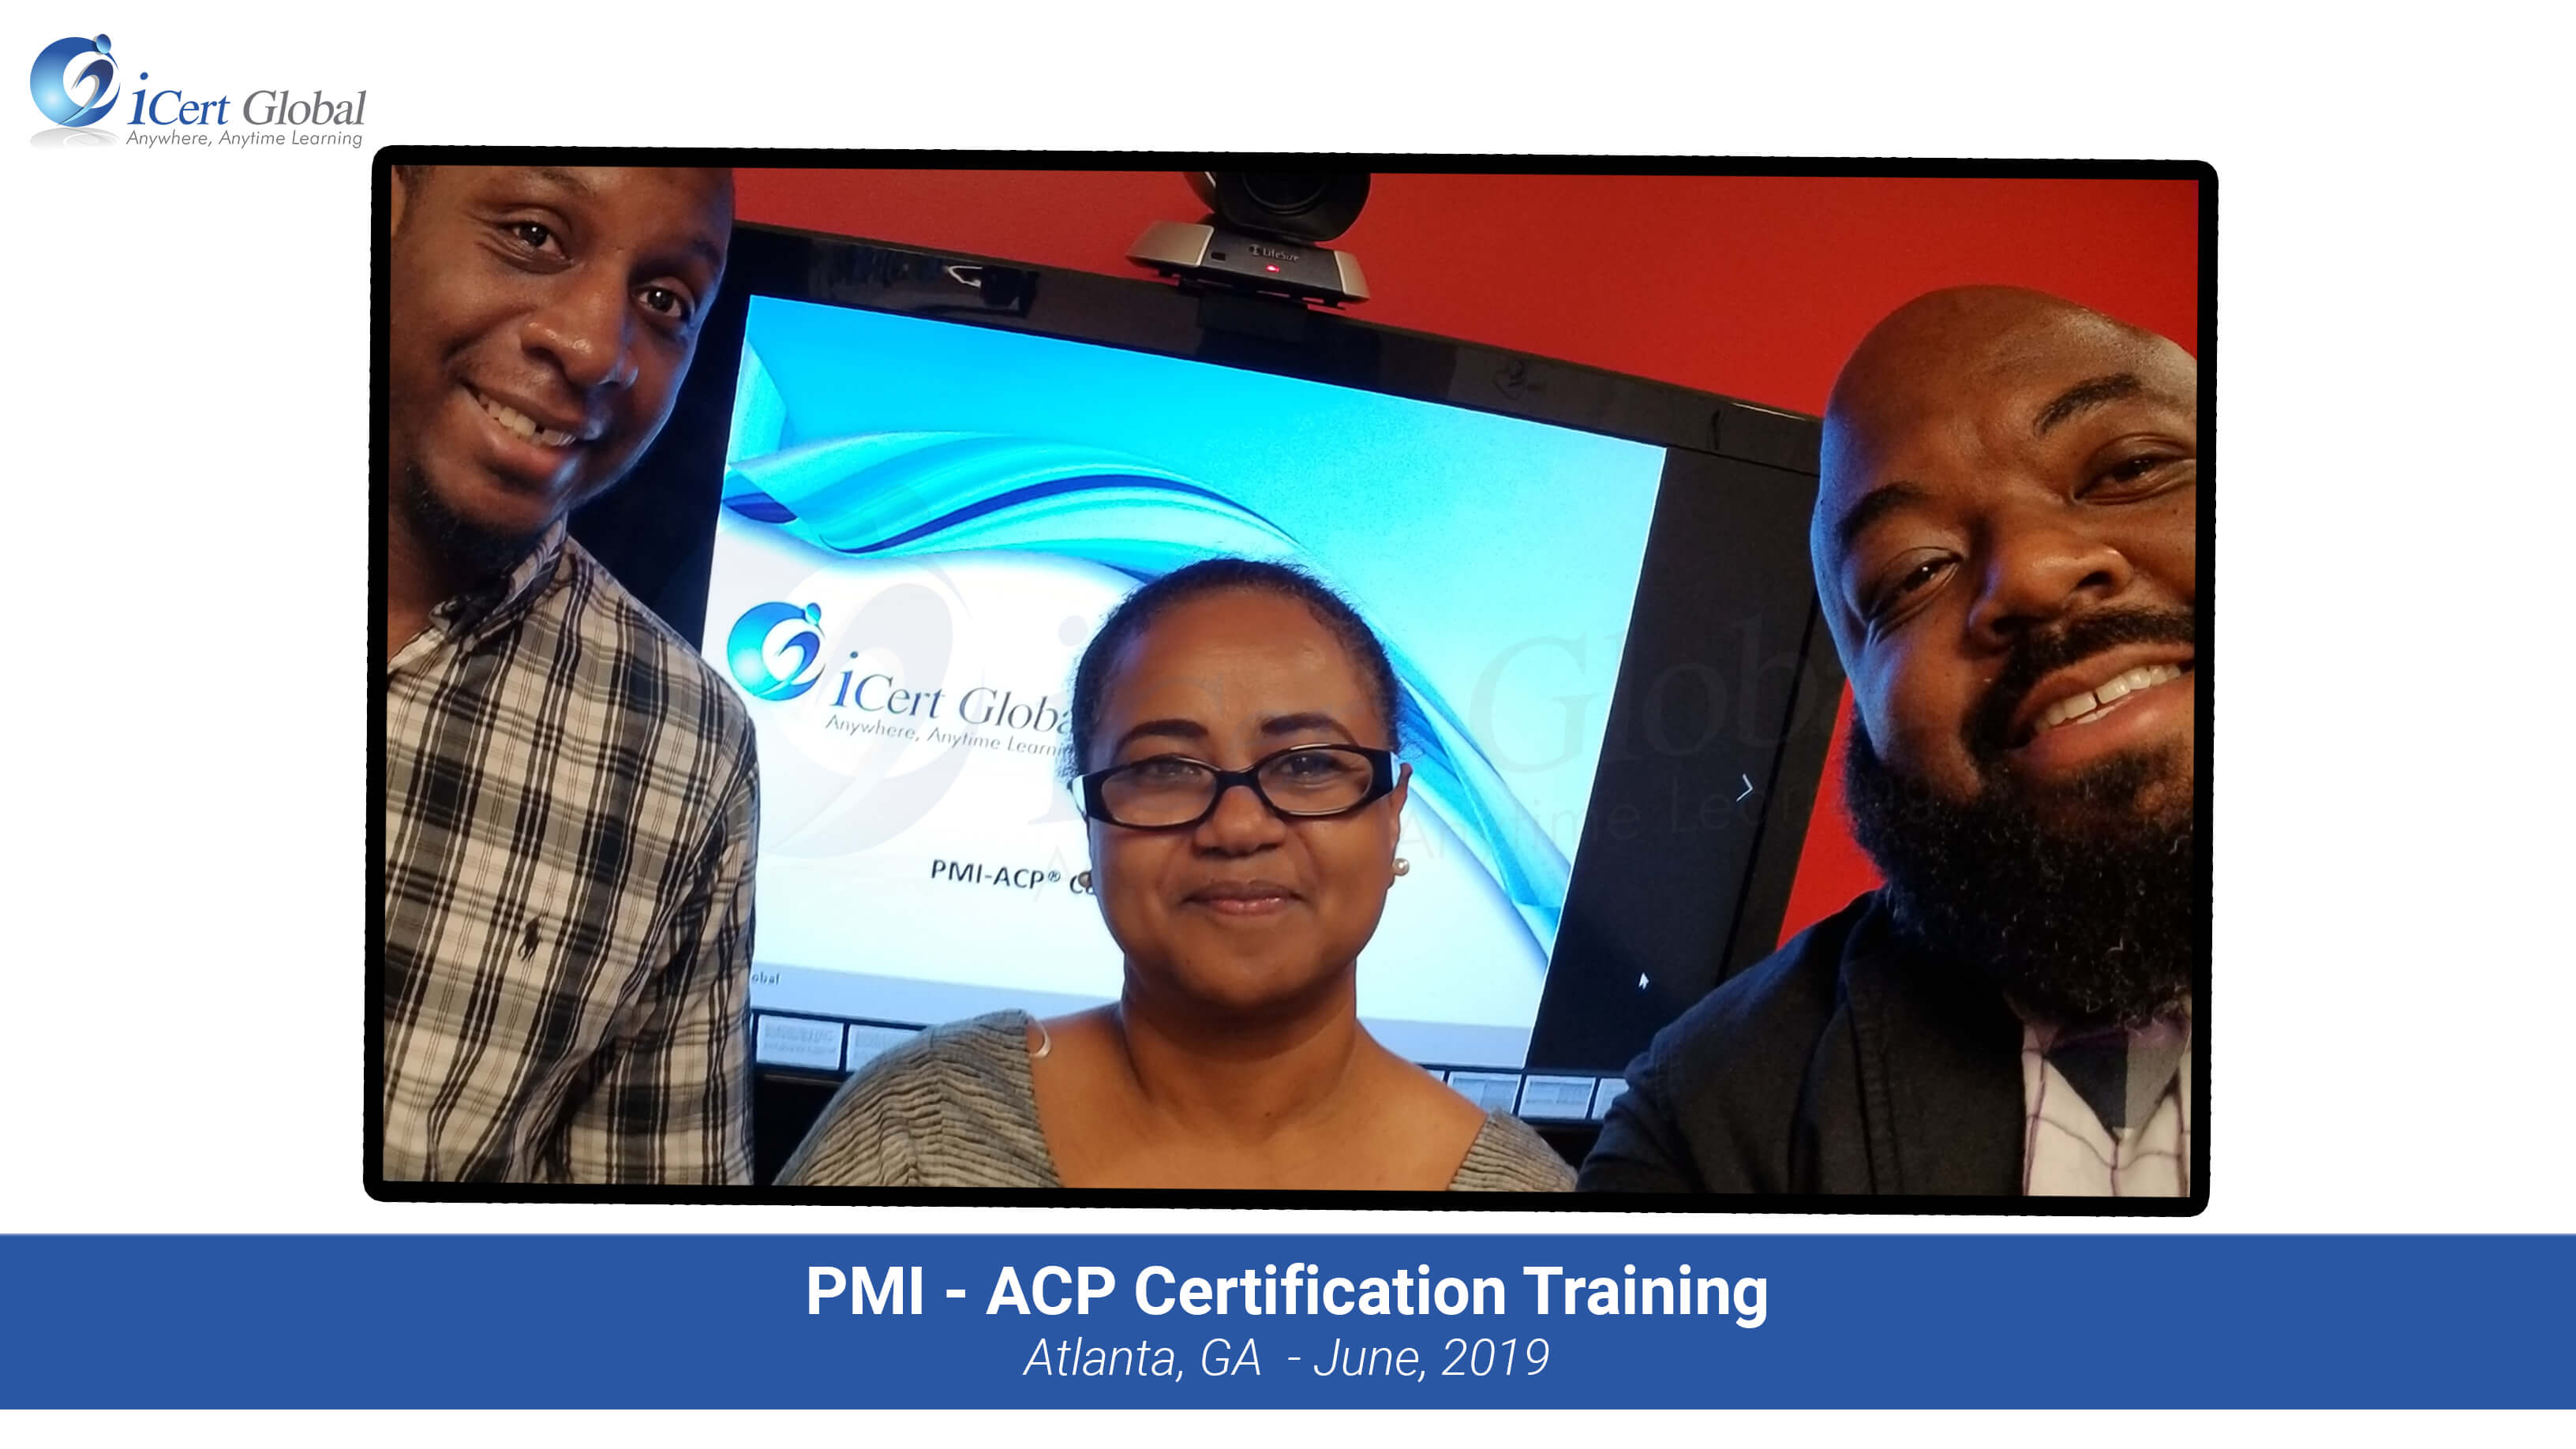 PMI-ACP Exam Prep Certification Training Classroom Course in Atlanta, GA in June 2019